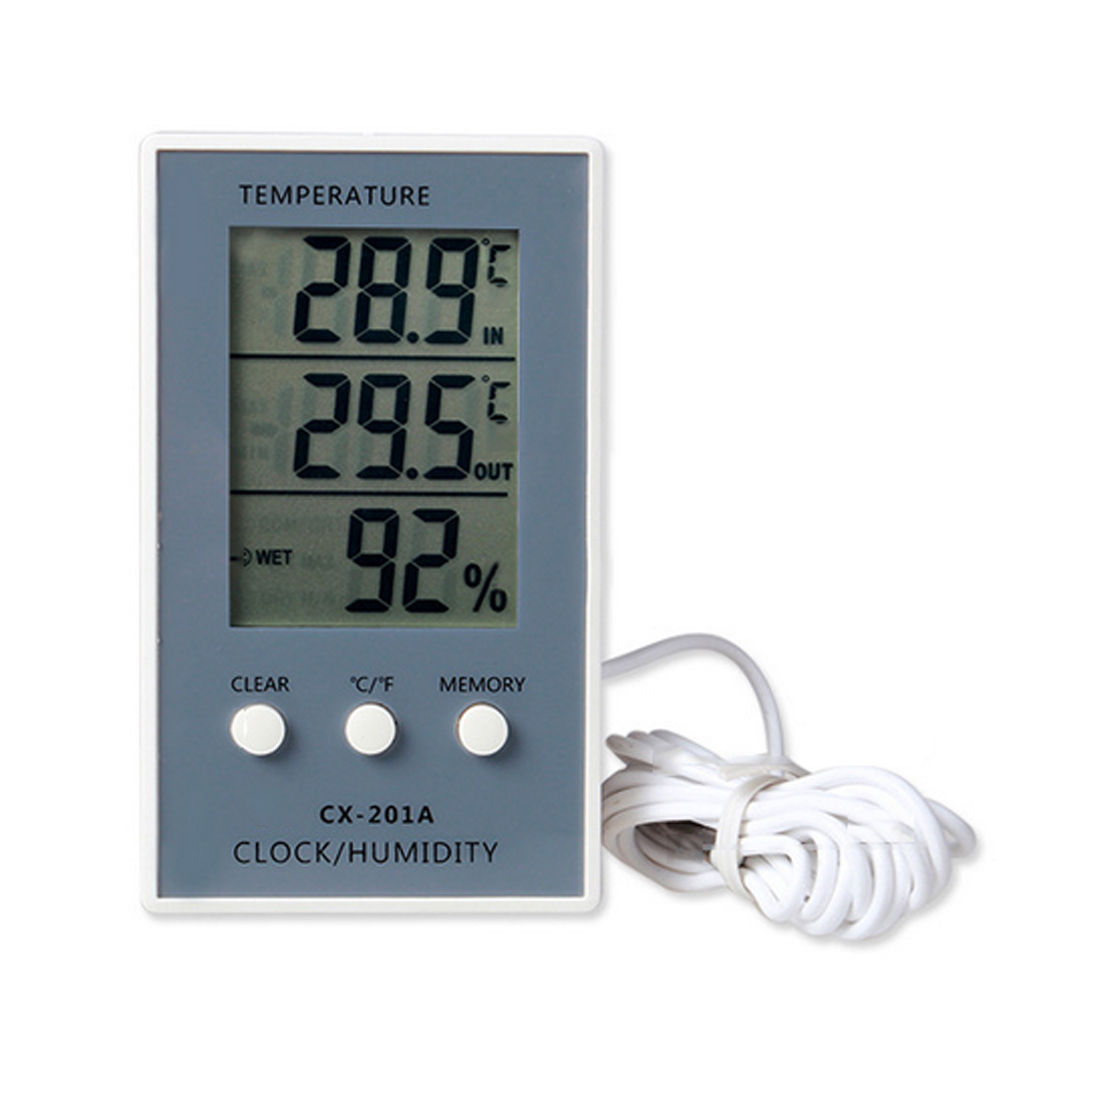 Digital Thermometer Hygrometer Indoor Outdoor Temperature Humidity Meter C/F LCD Display Sensor Probe Weather Station mini 2 0 lcd car indoor thermometer hygrometer black 10 c 50 c 20% 95% rh 1 x lr44